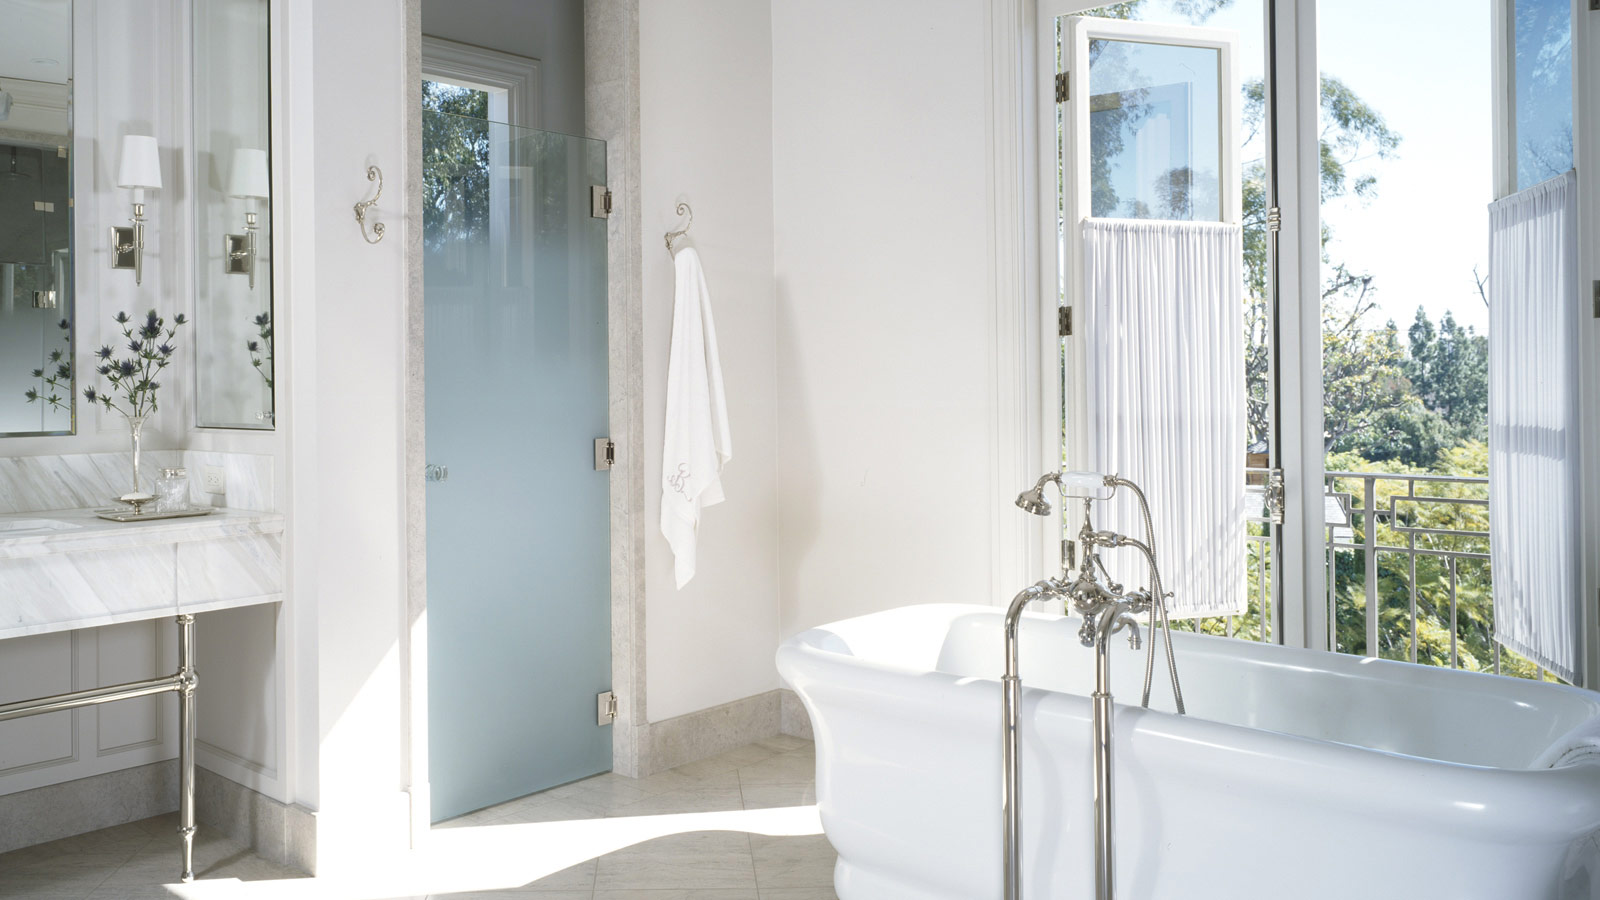 To da loos frosted shower doors functional and pretty - Frosted doors for bathroom ...